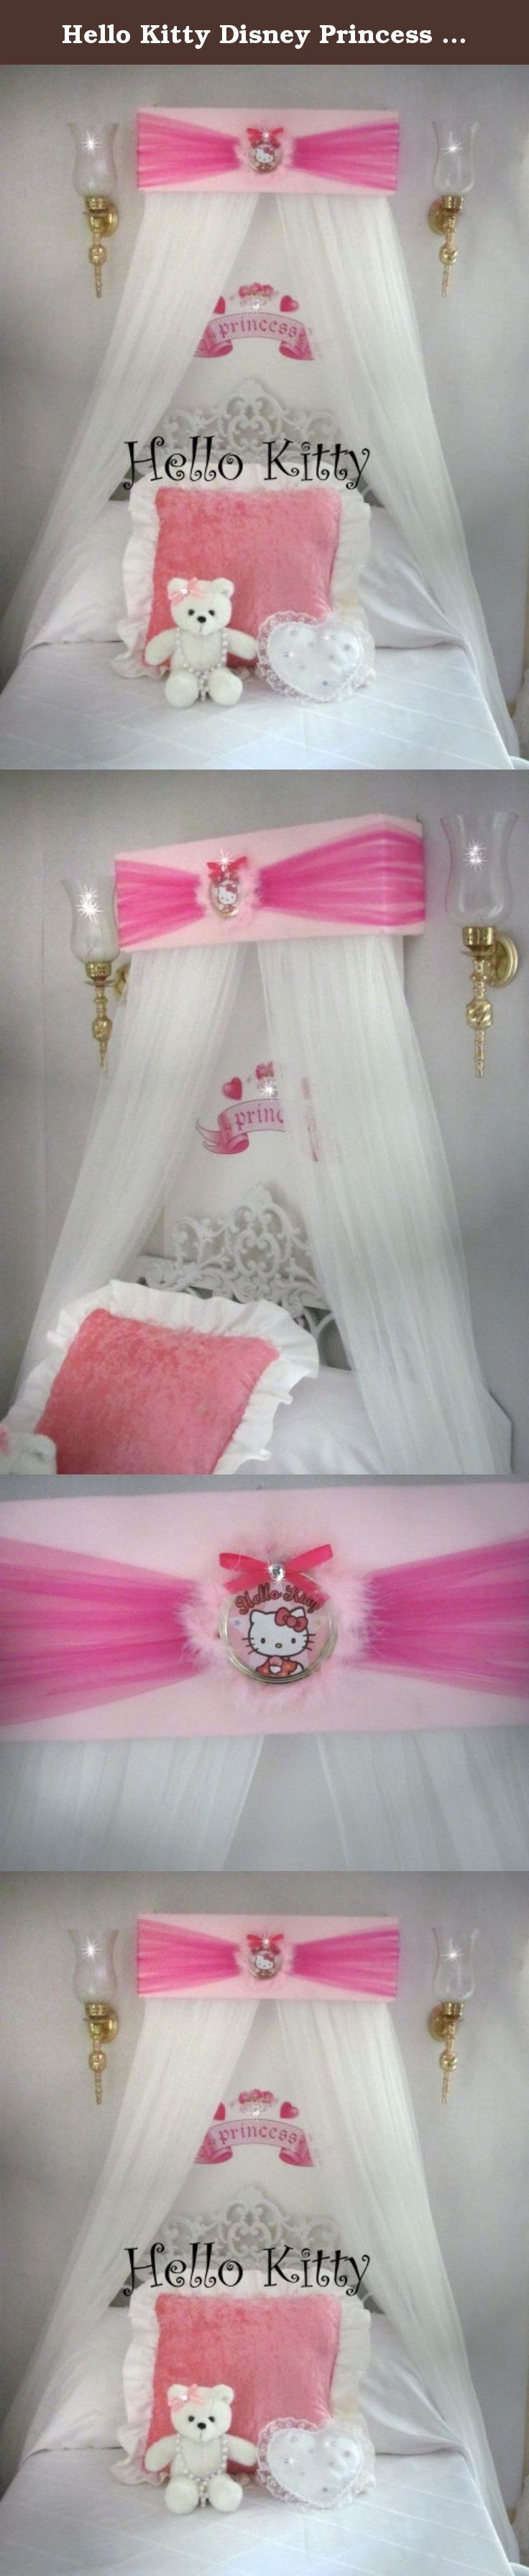 Crib for sale davao - Hello Kitty Disney Princess Bed Canopy For Bedroom Pink Hot Pink Crib Nursery On Sale From